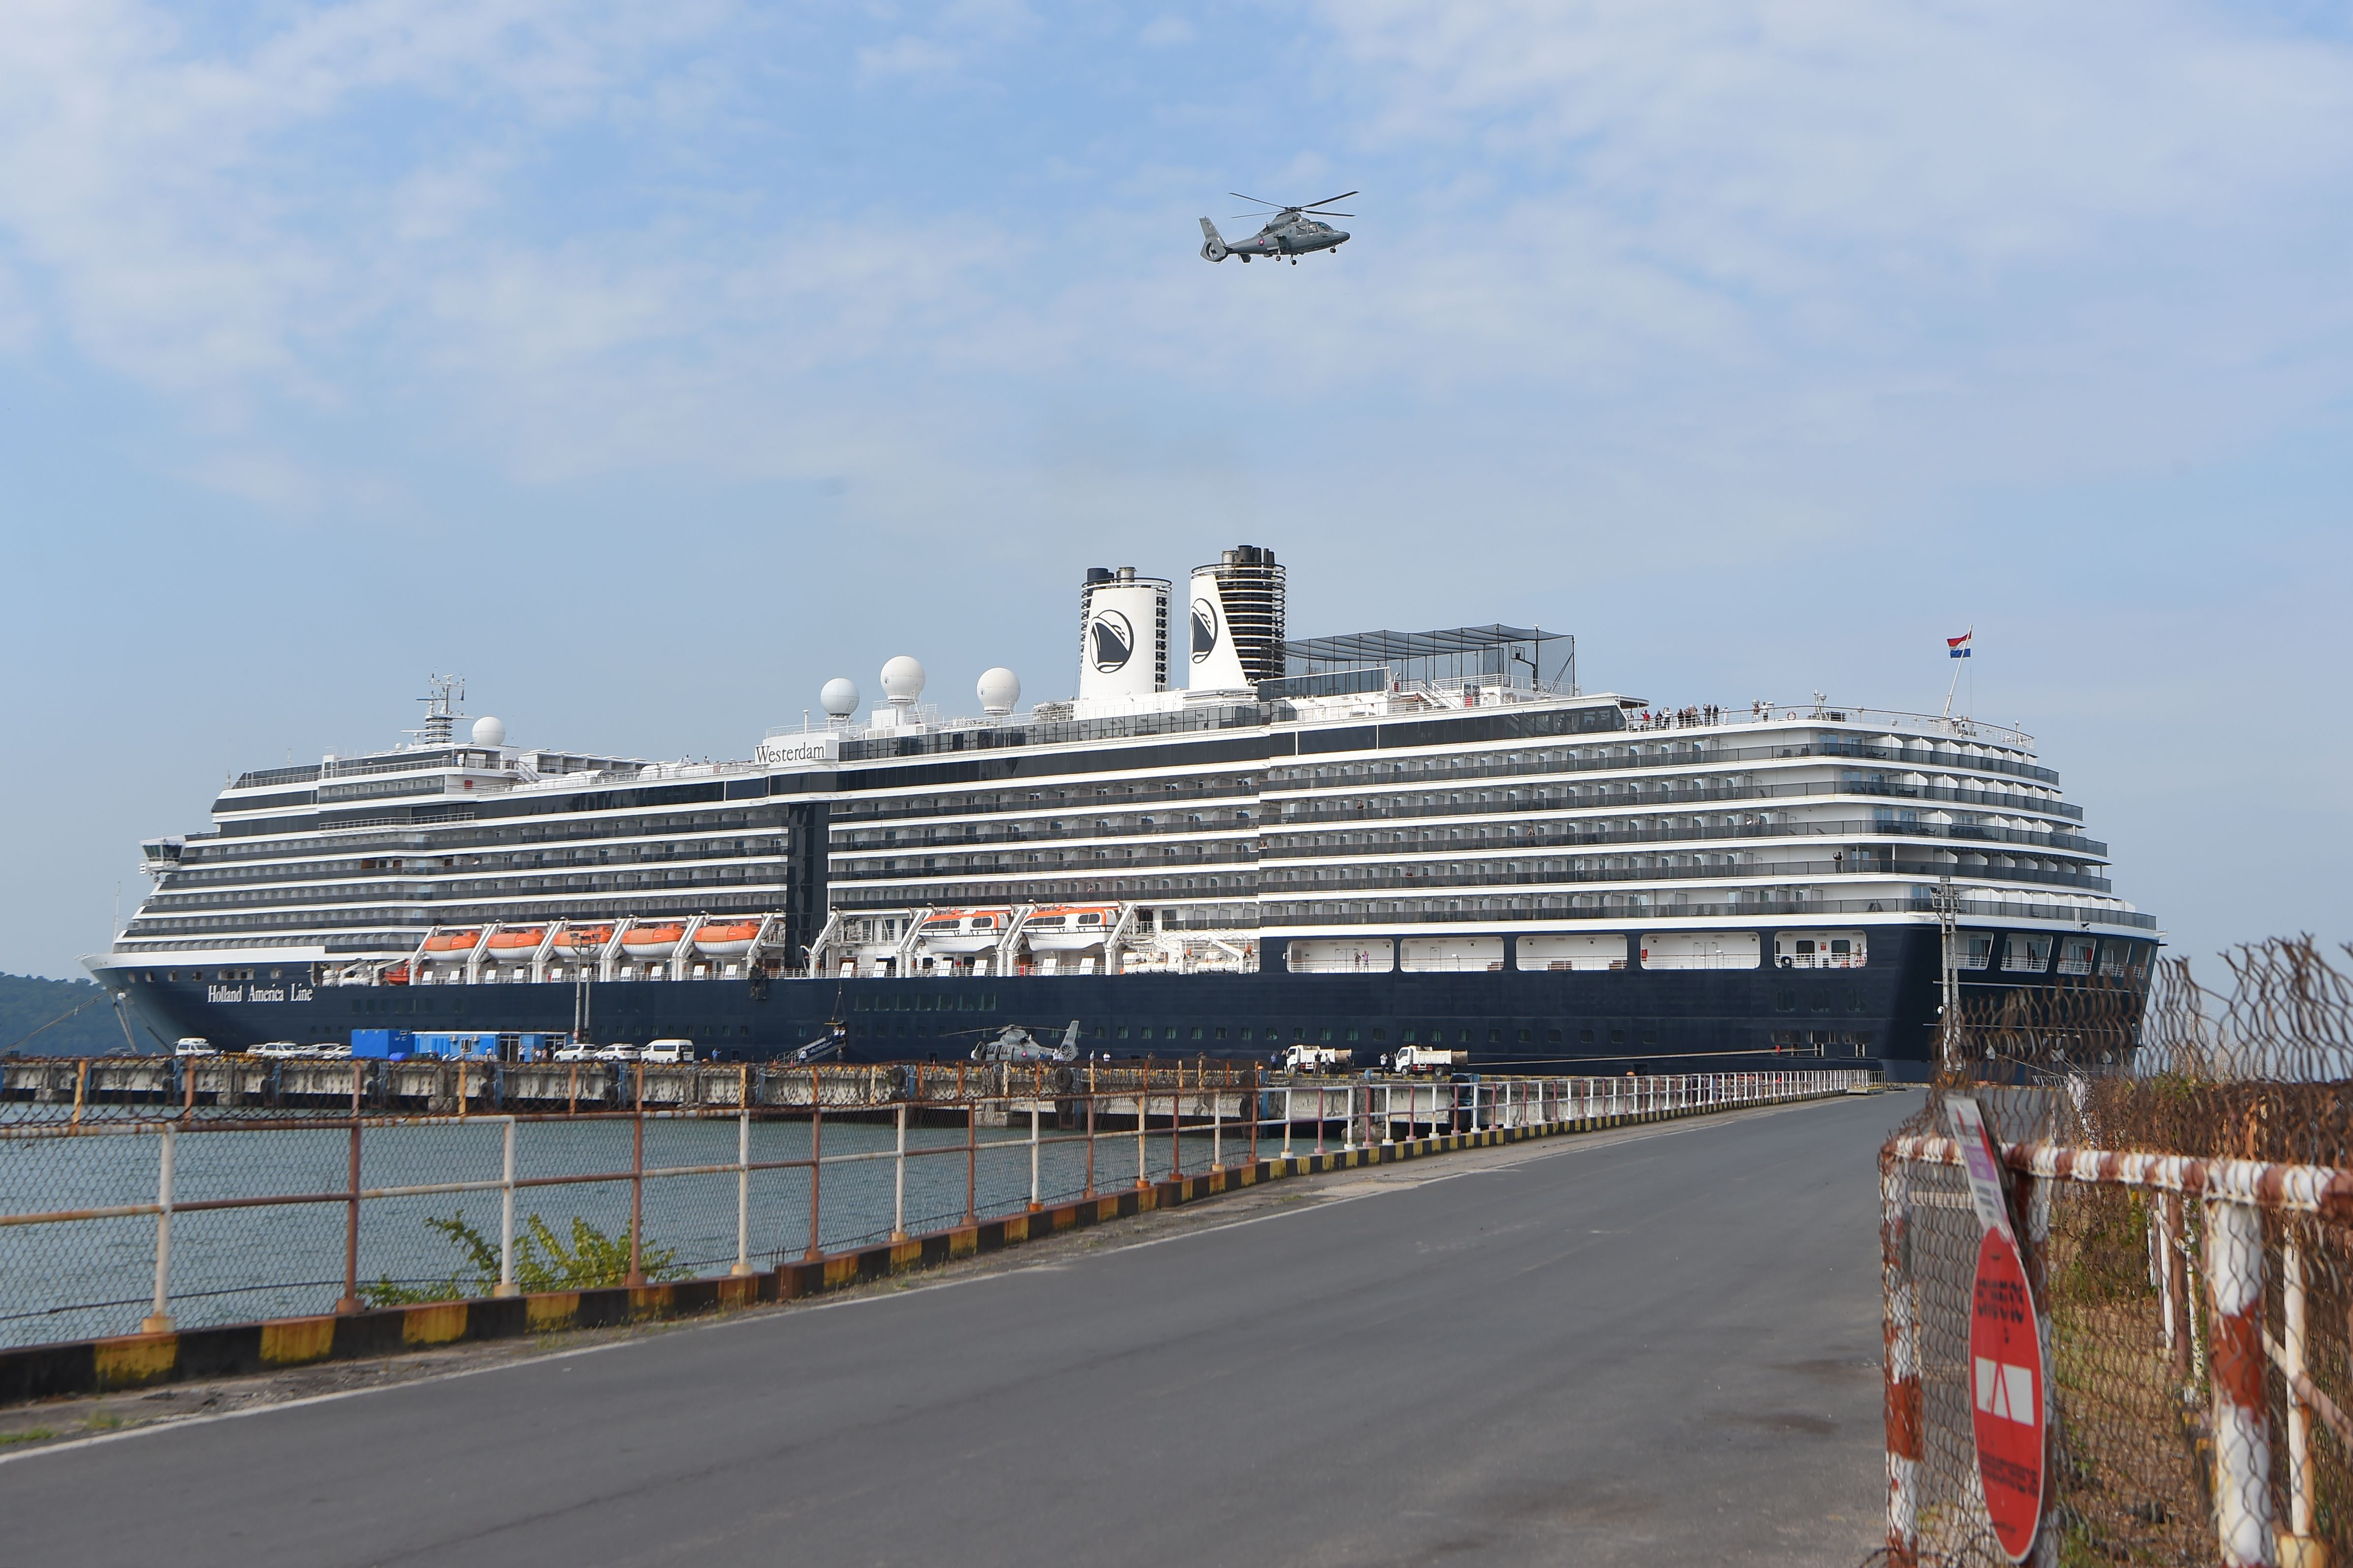 A helicopter takes off next to the Westerdam cruise ship in Sihanoukville, Cambodia.